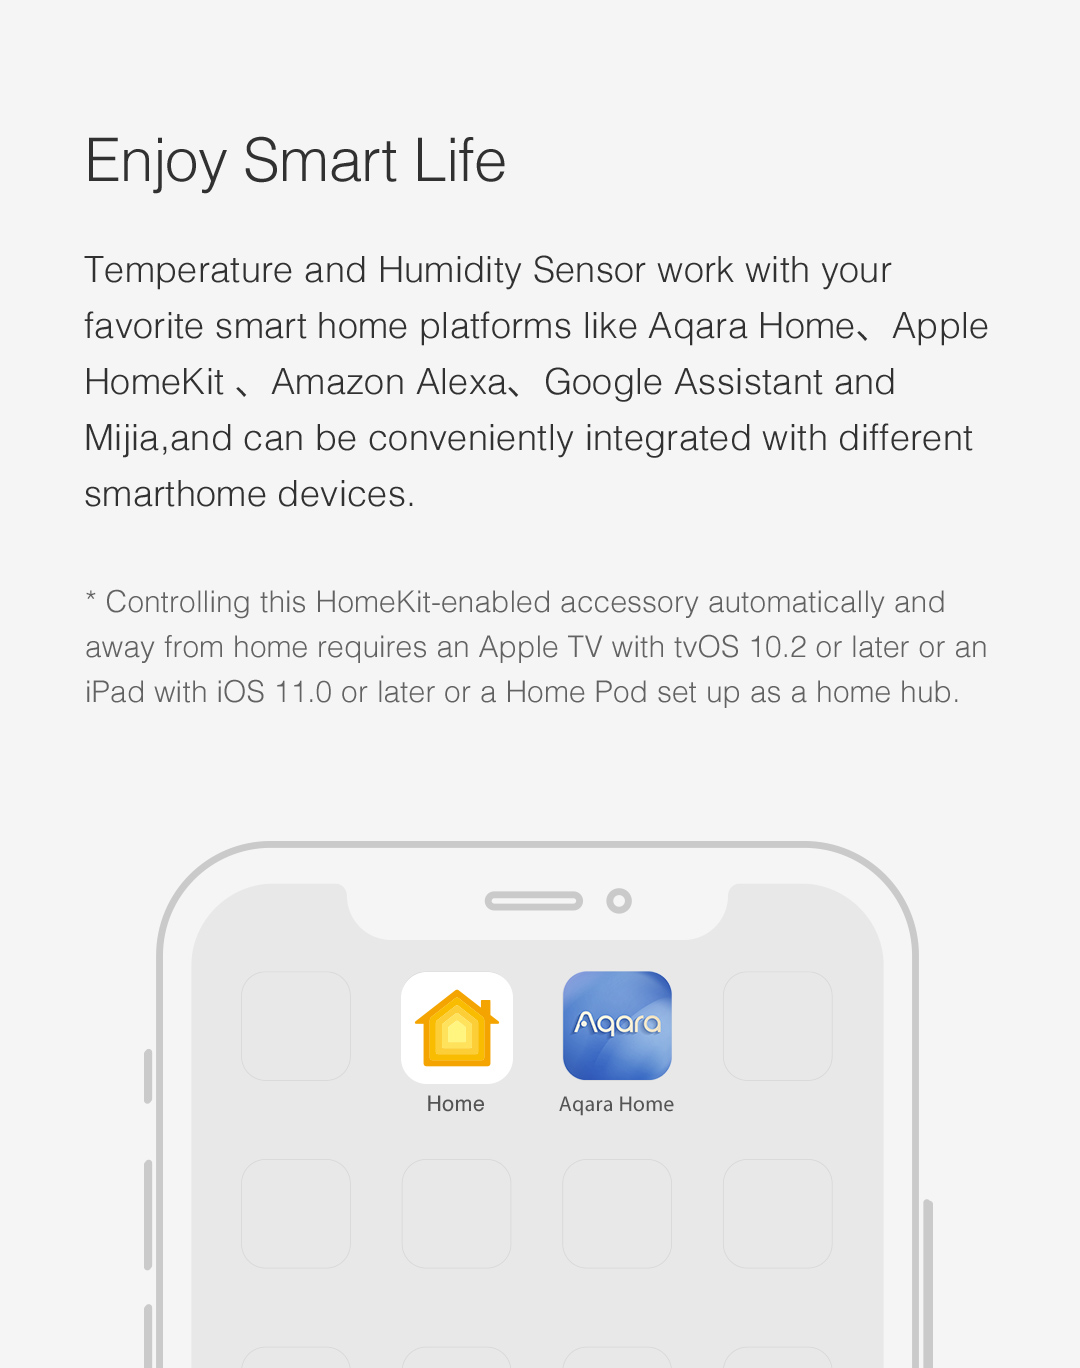 Aqara Temp and Humidity Detector works with other HomeKit-enabled accessories in Apple Home app